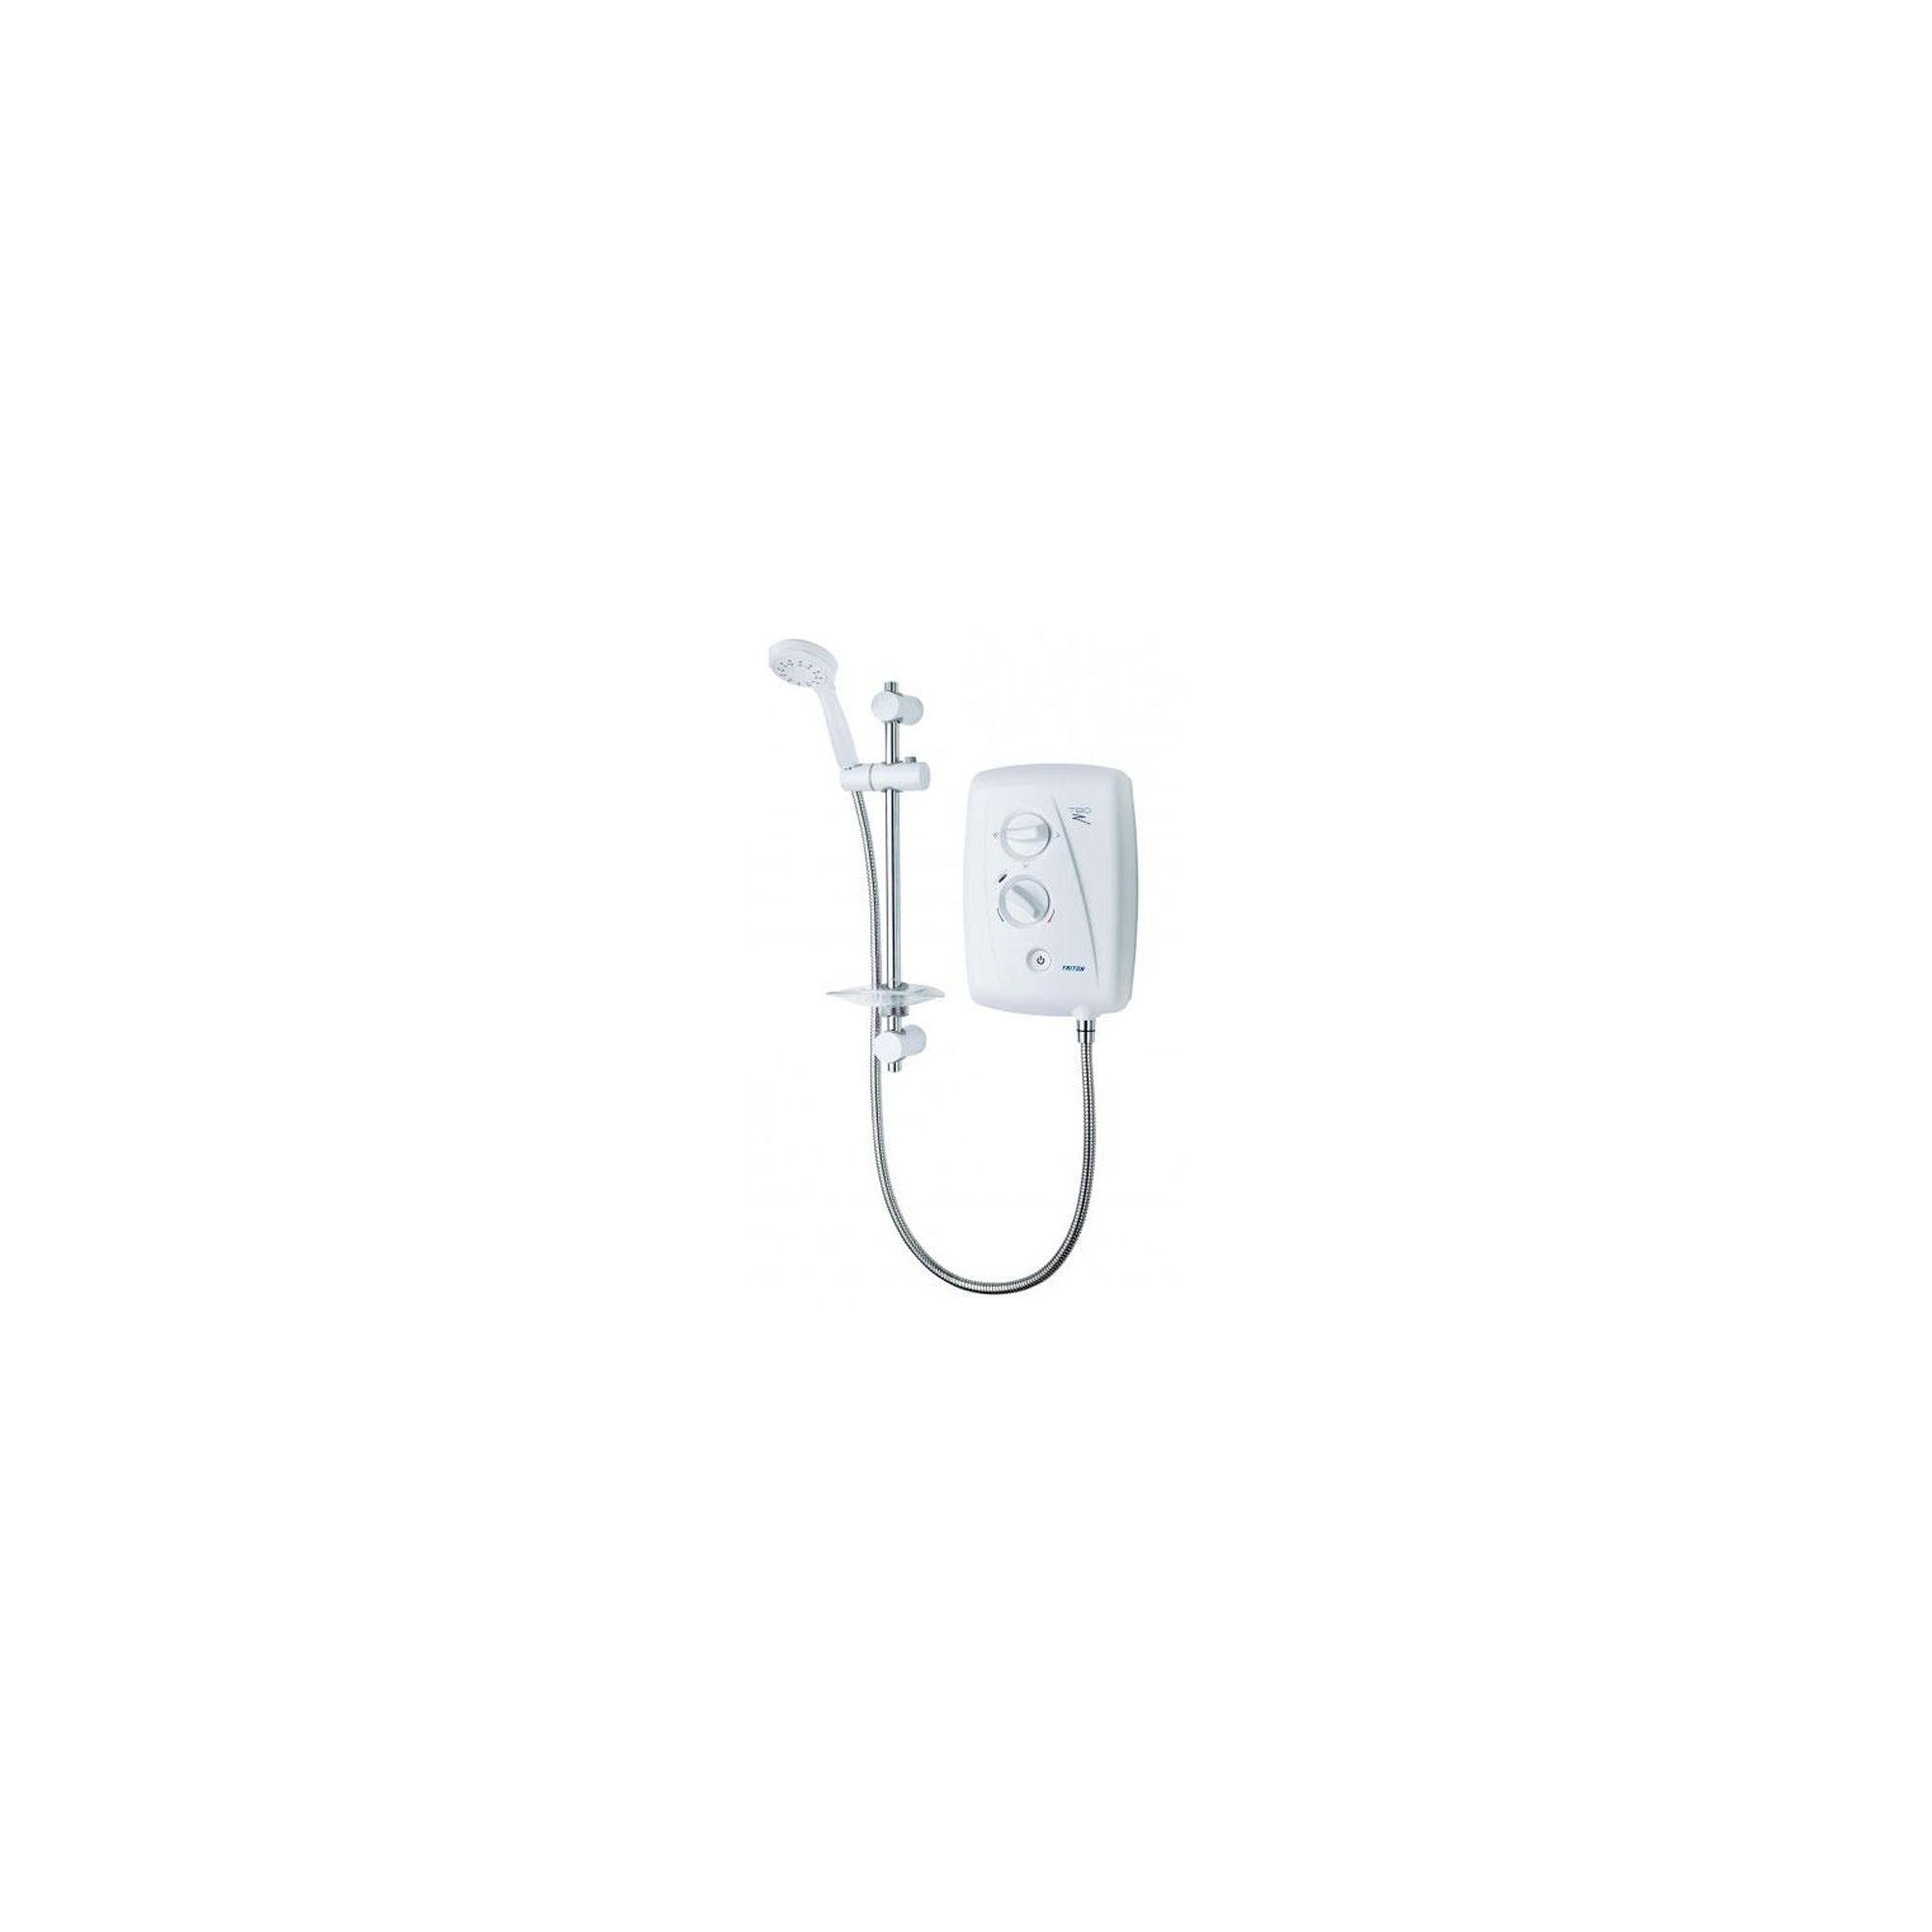 Triton T80Z Fast-Fit Electric Shower White/Chrome 10.5 kW at Tesco Direct